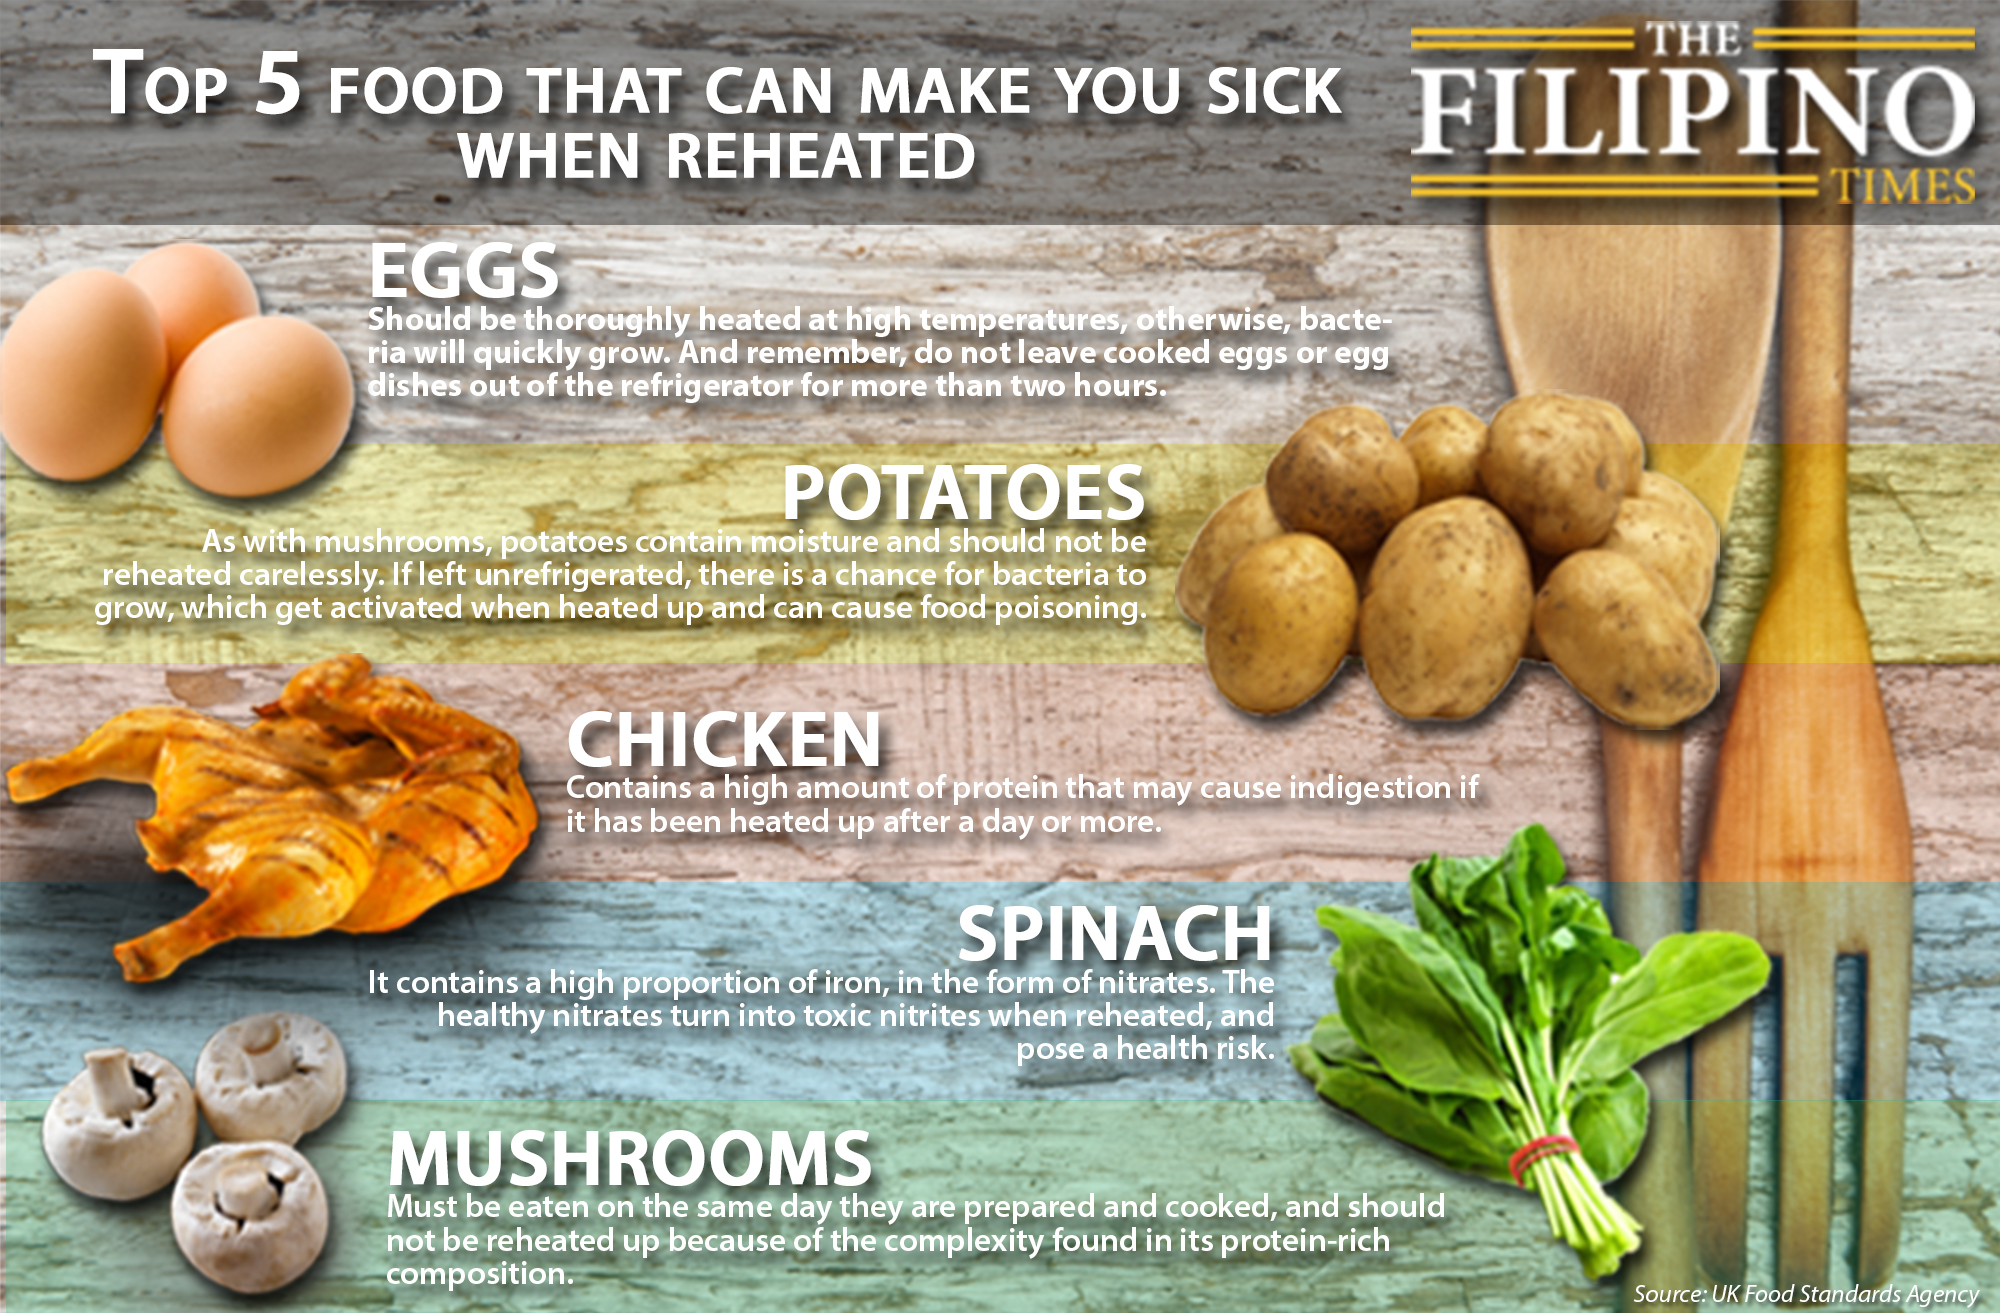 What You Should Eat After Food Poisoning